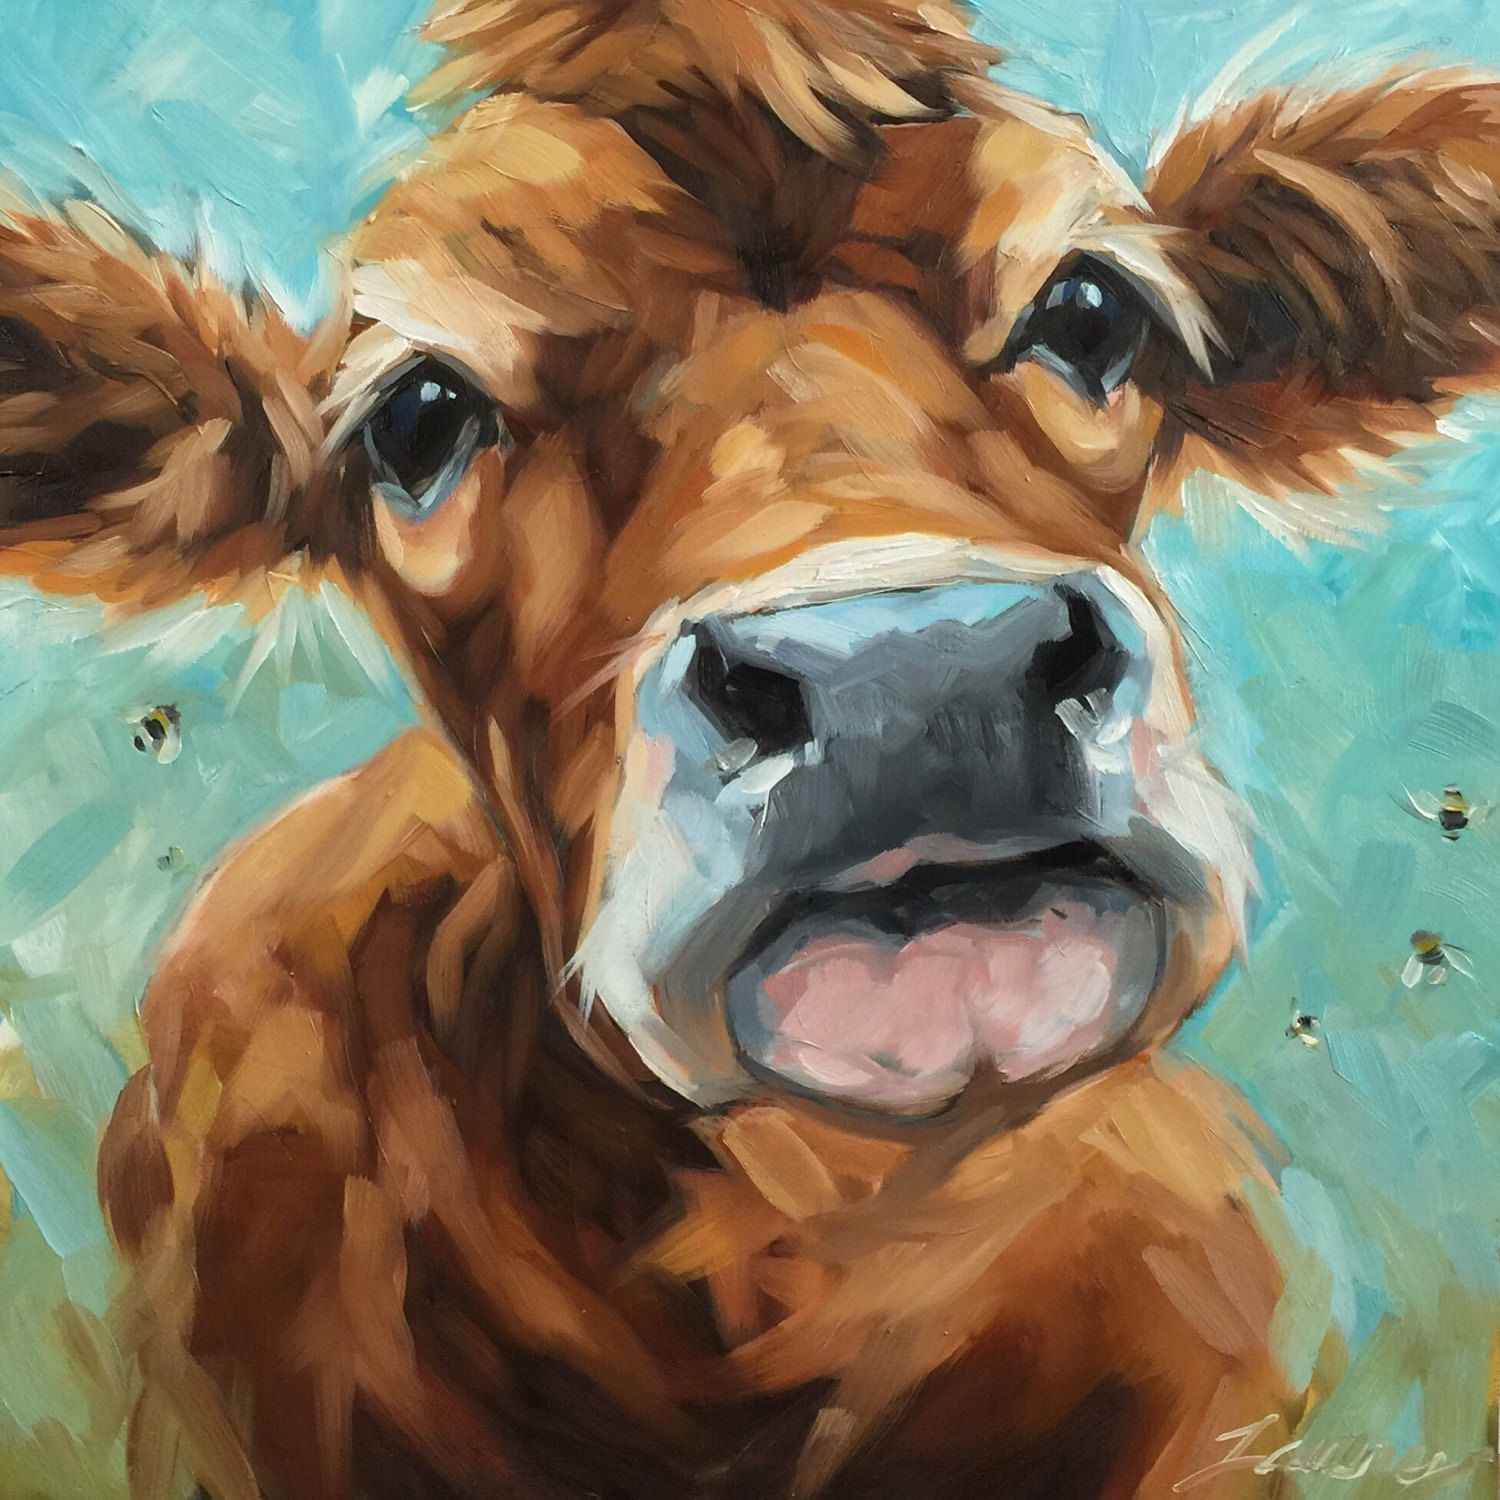 Colorful Farm Animal Paintings – Through the thousand pictures on the web rega…